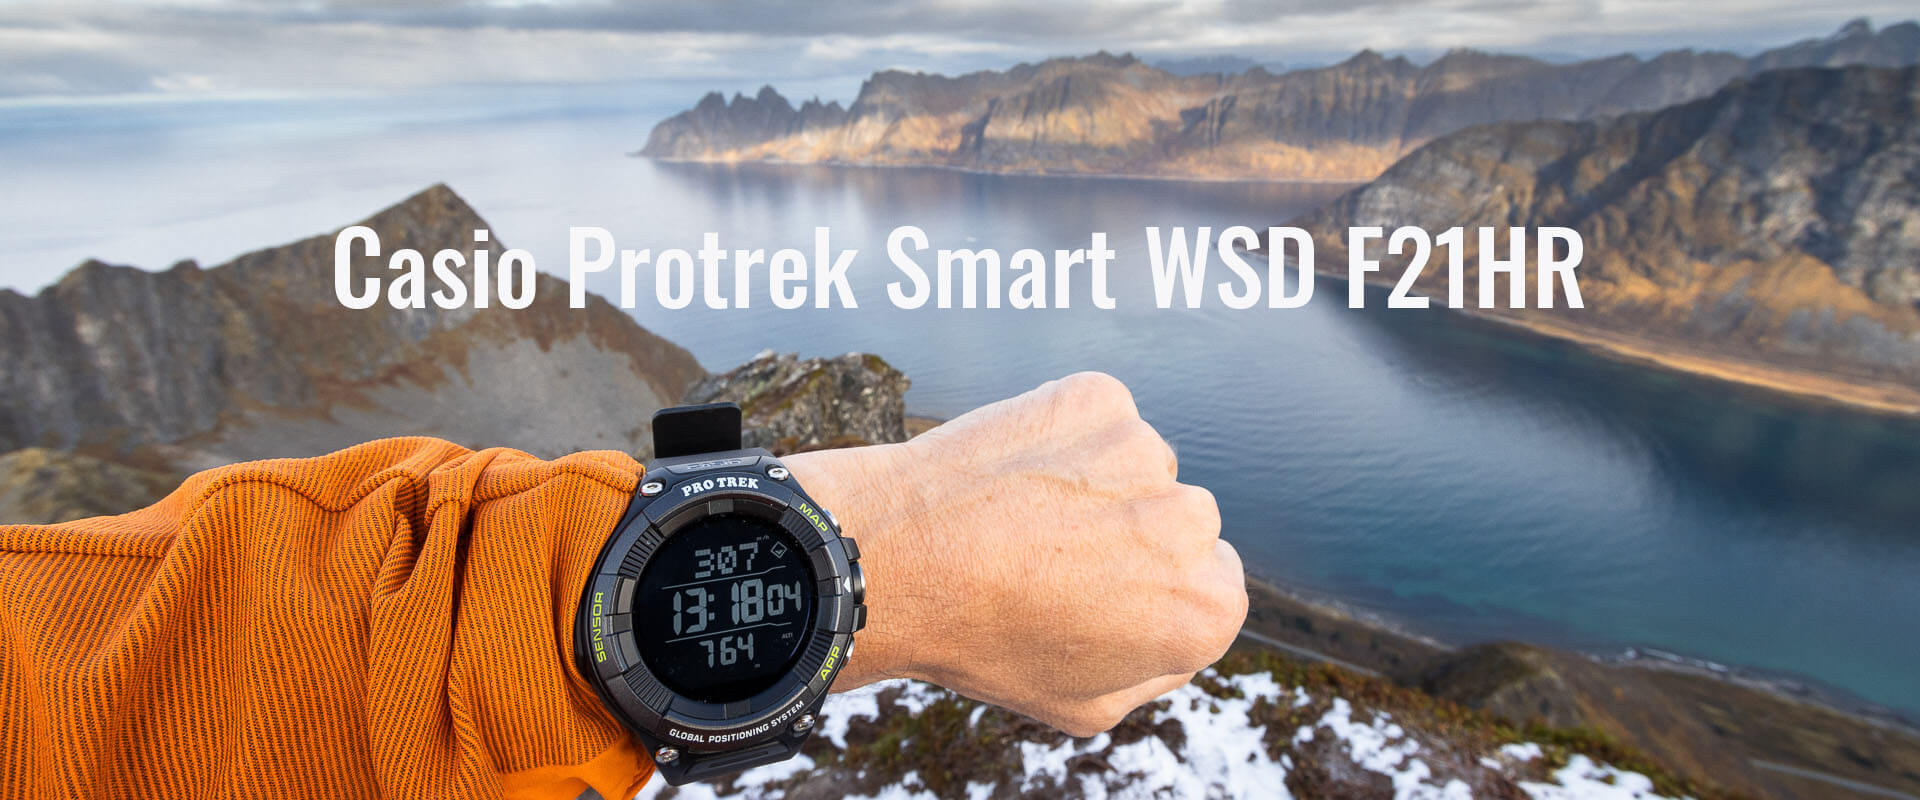 Casio Protrek Smart WSD F21HR